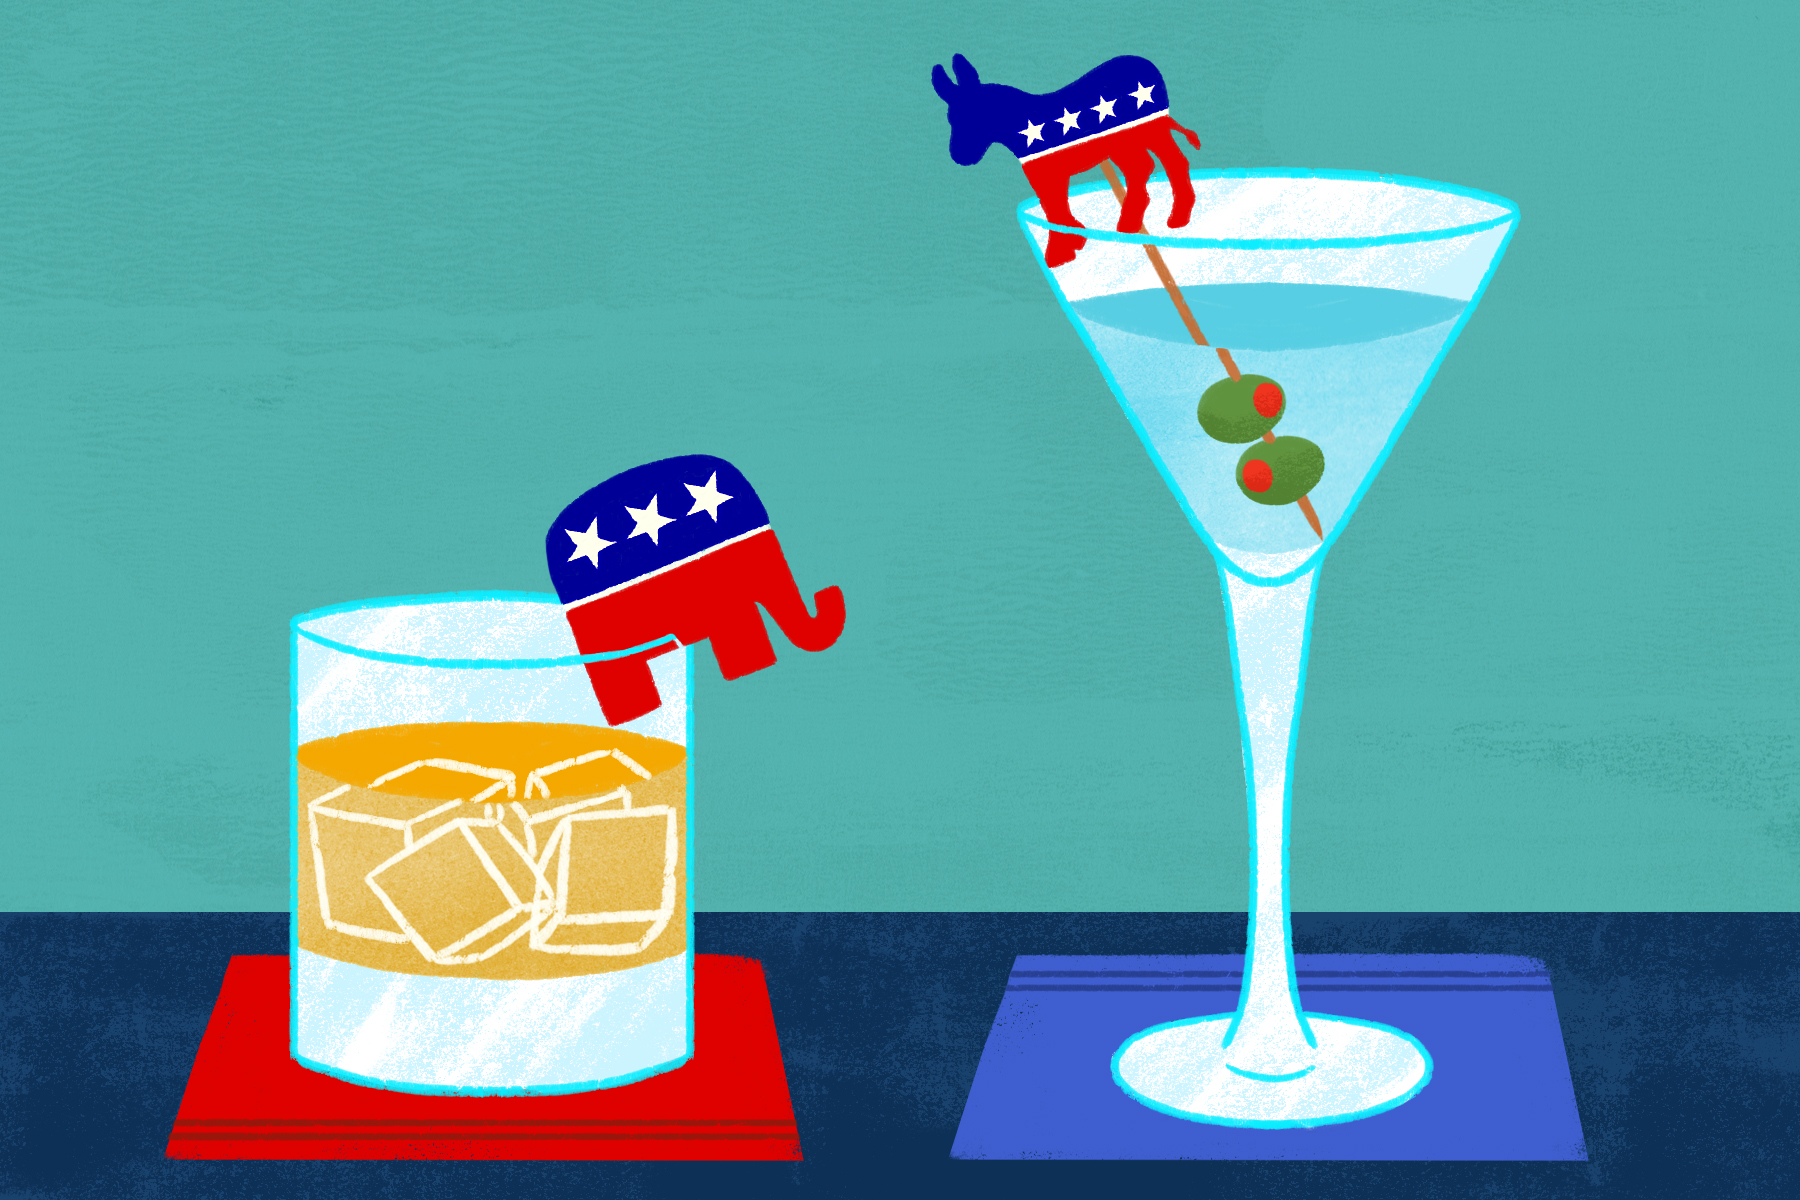 washpost_OpEd_PolitDrinking_Color_RGB_01.jpg